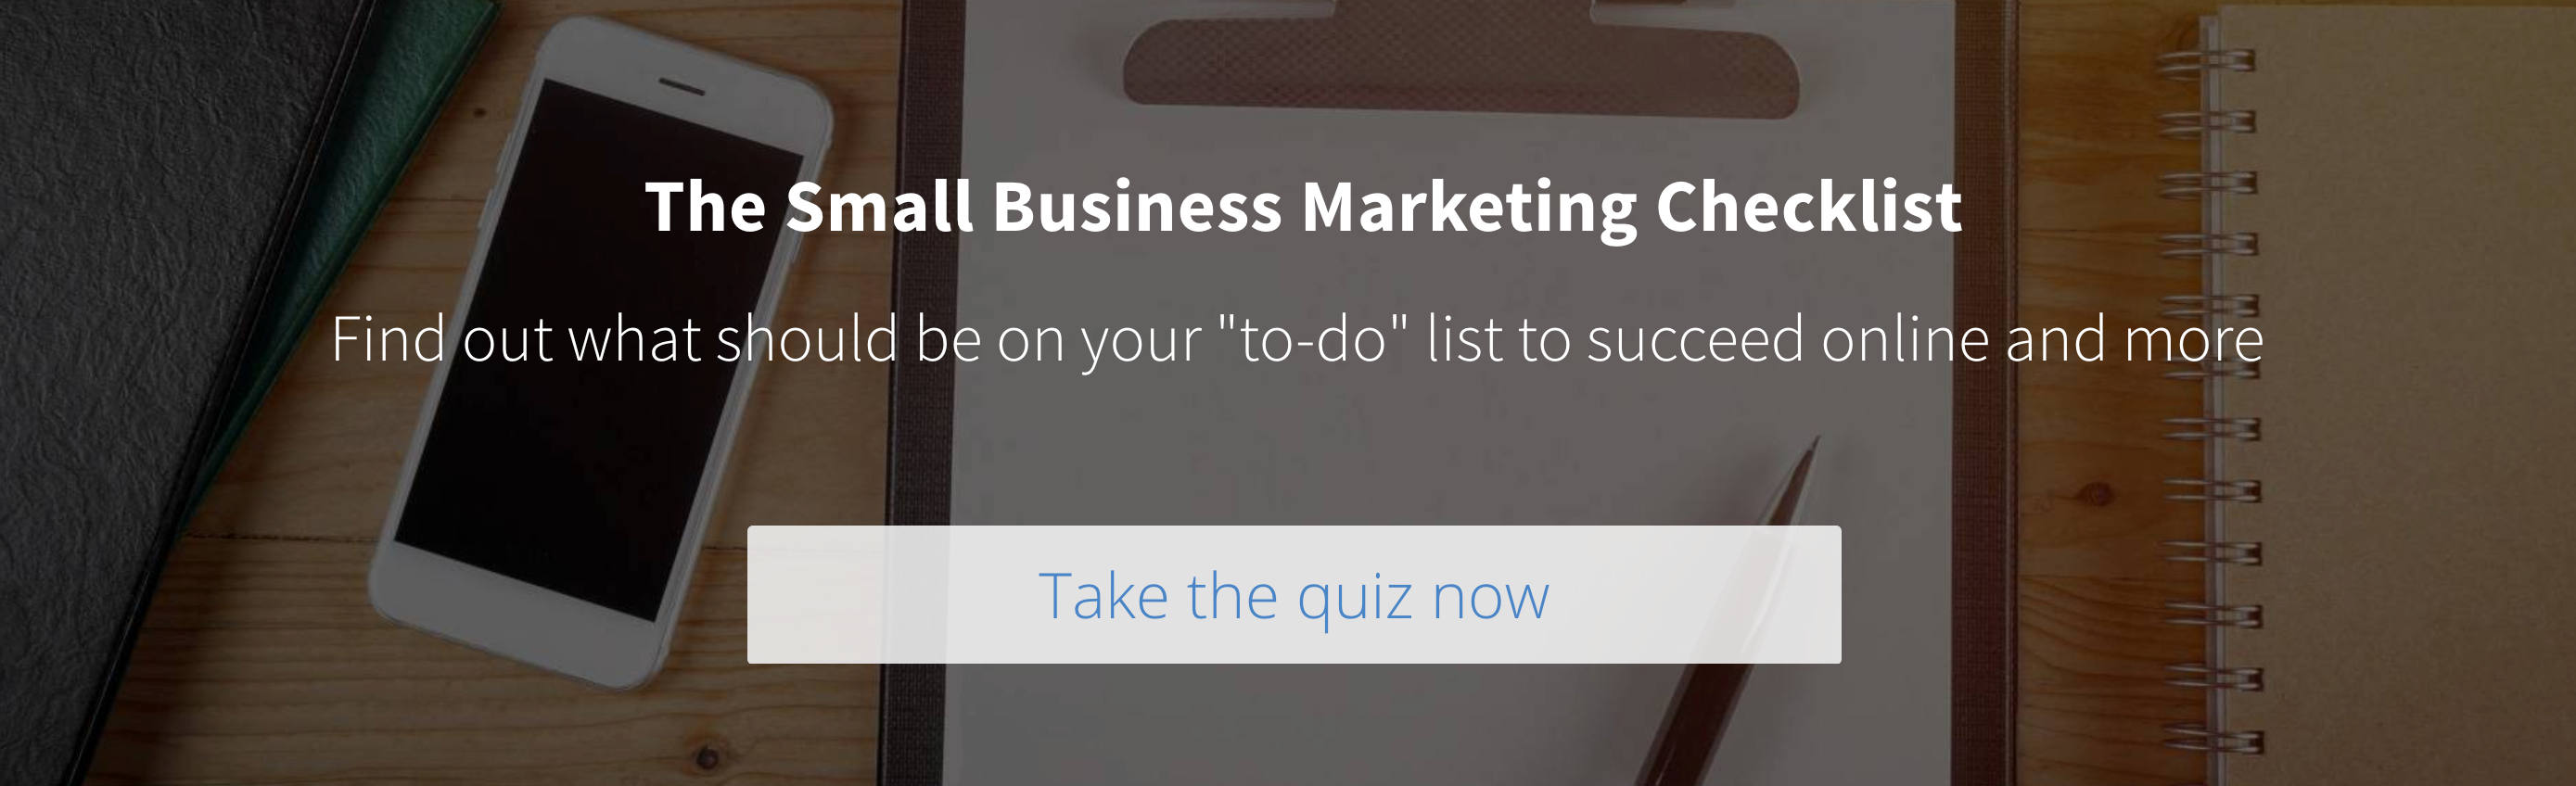 Hibu Small Business Marketing Checklist - Take the Quiz Now